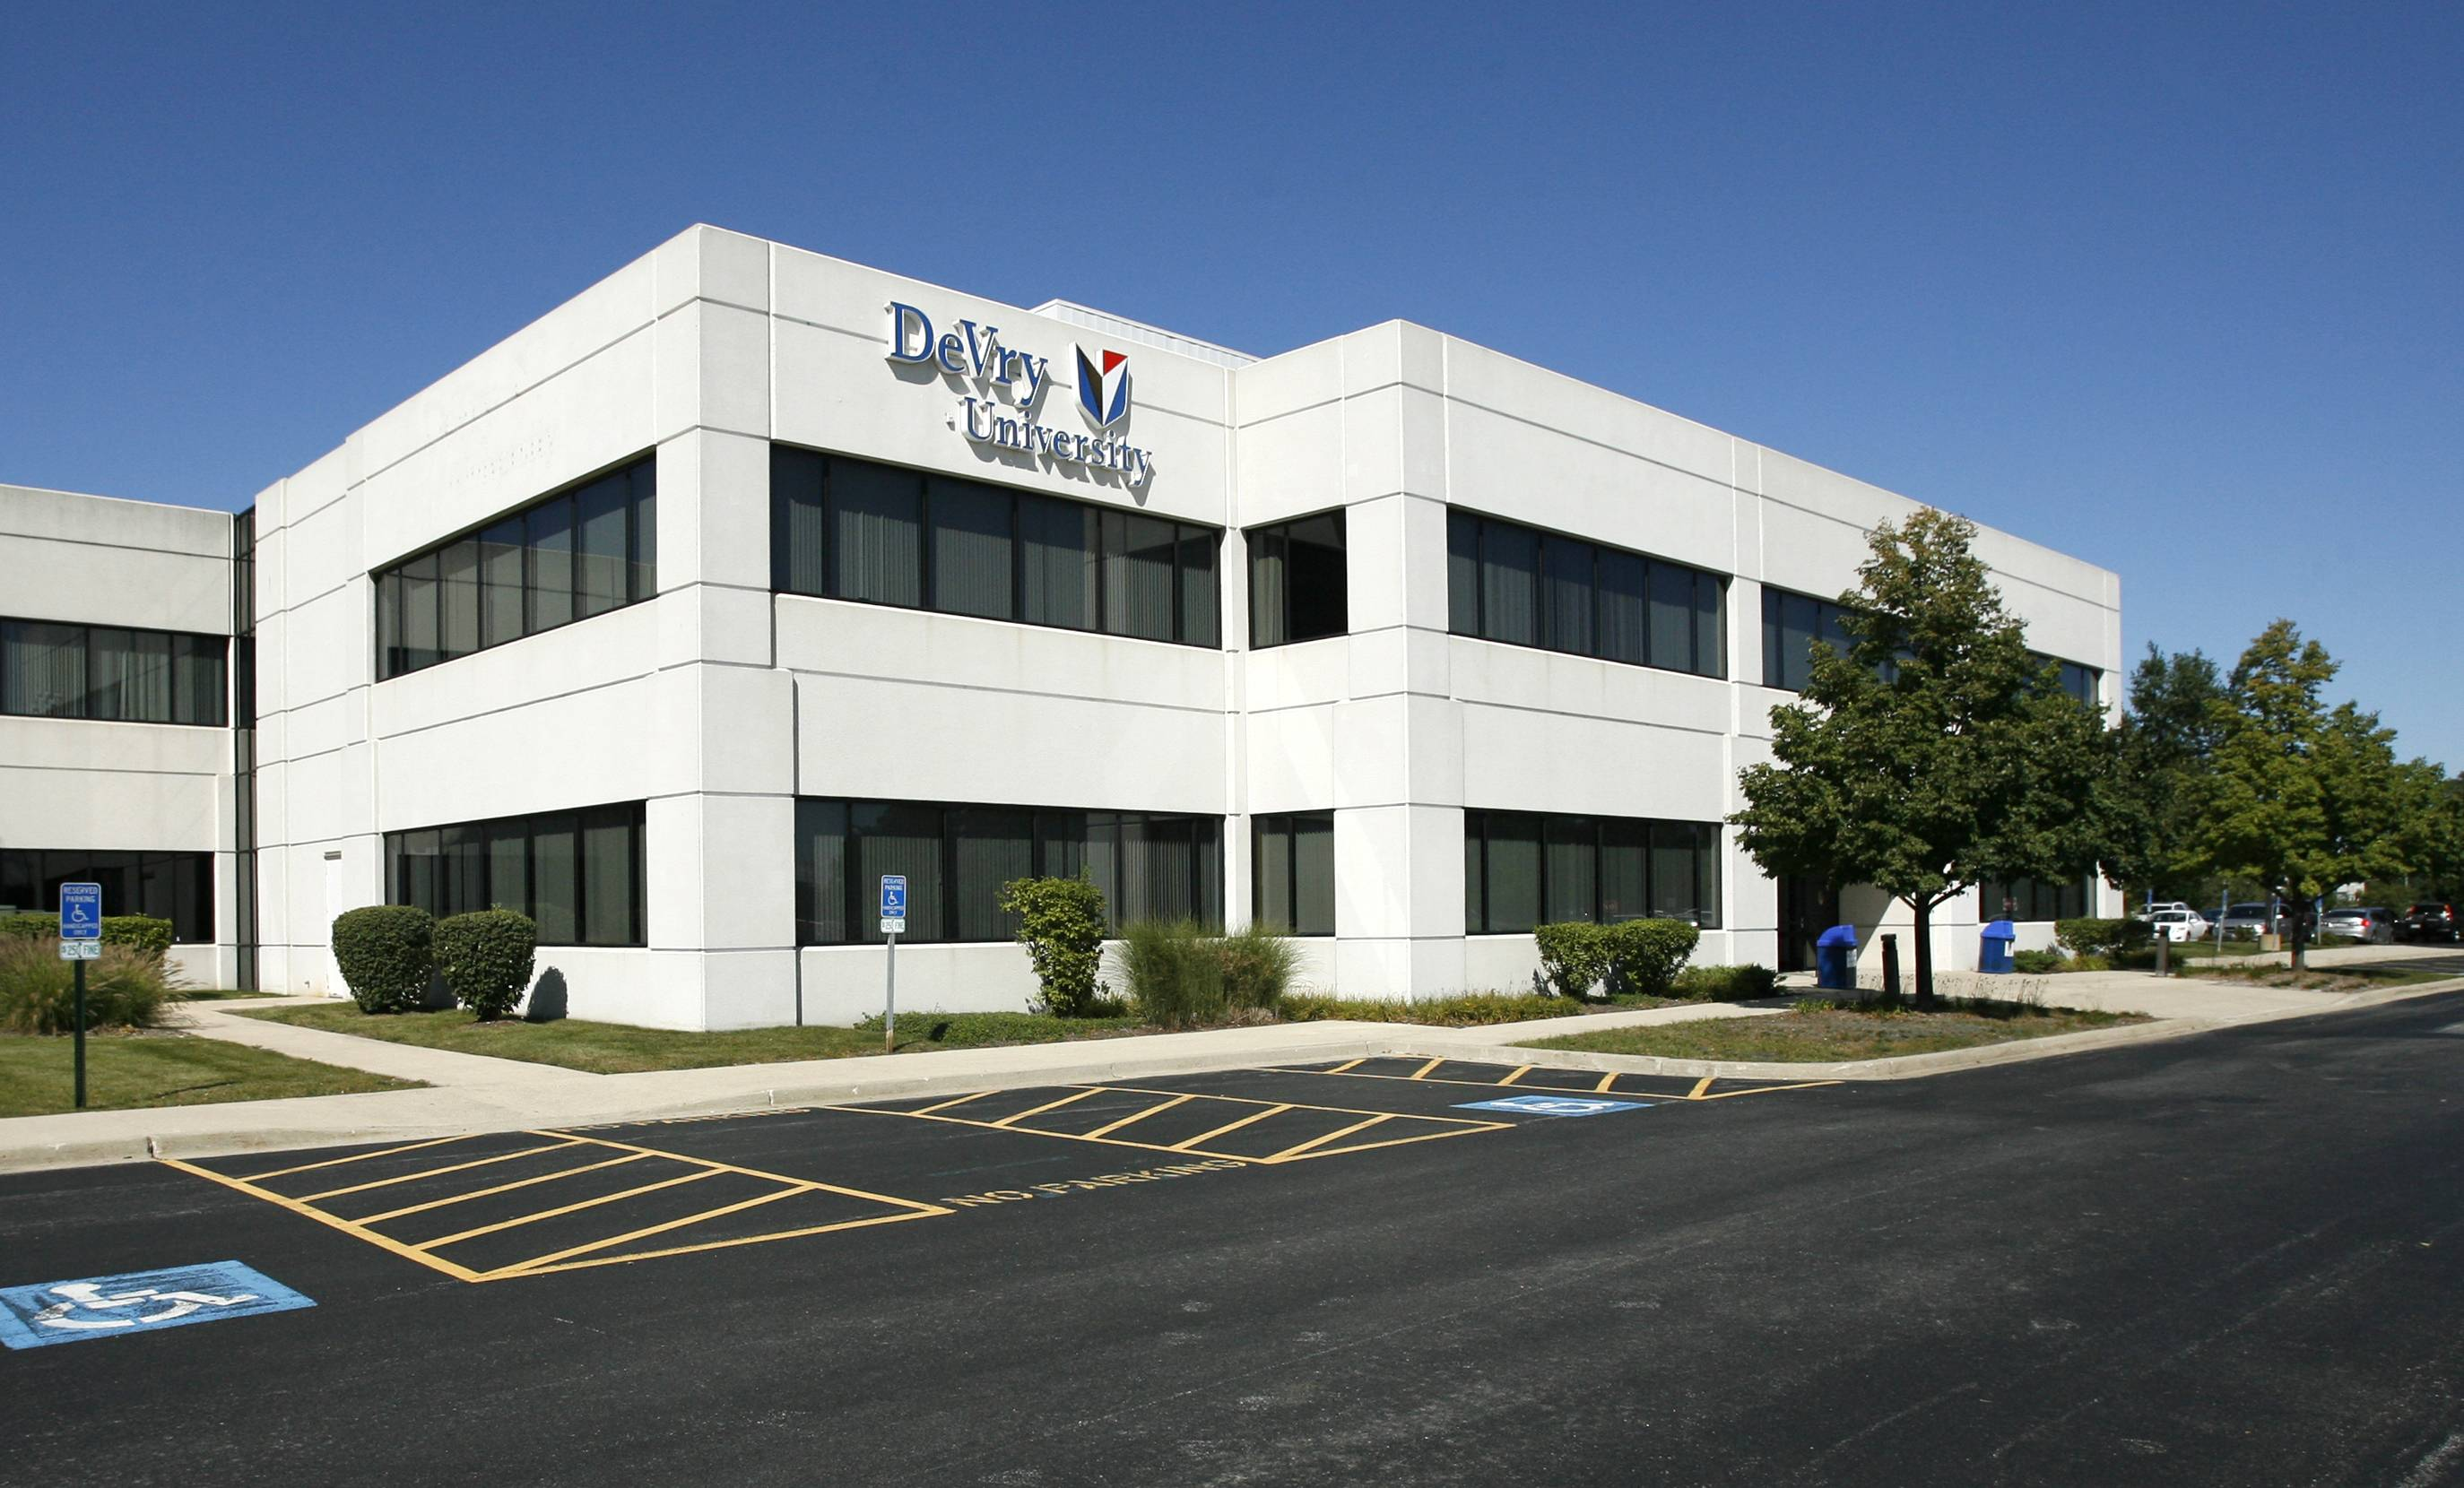 DeVry closes campuses for unknown security issue